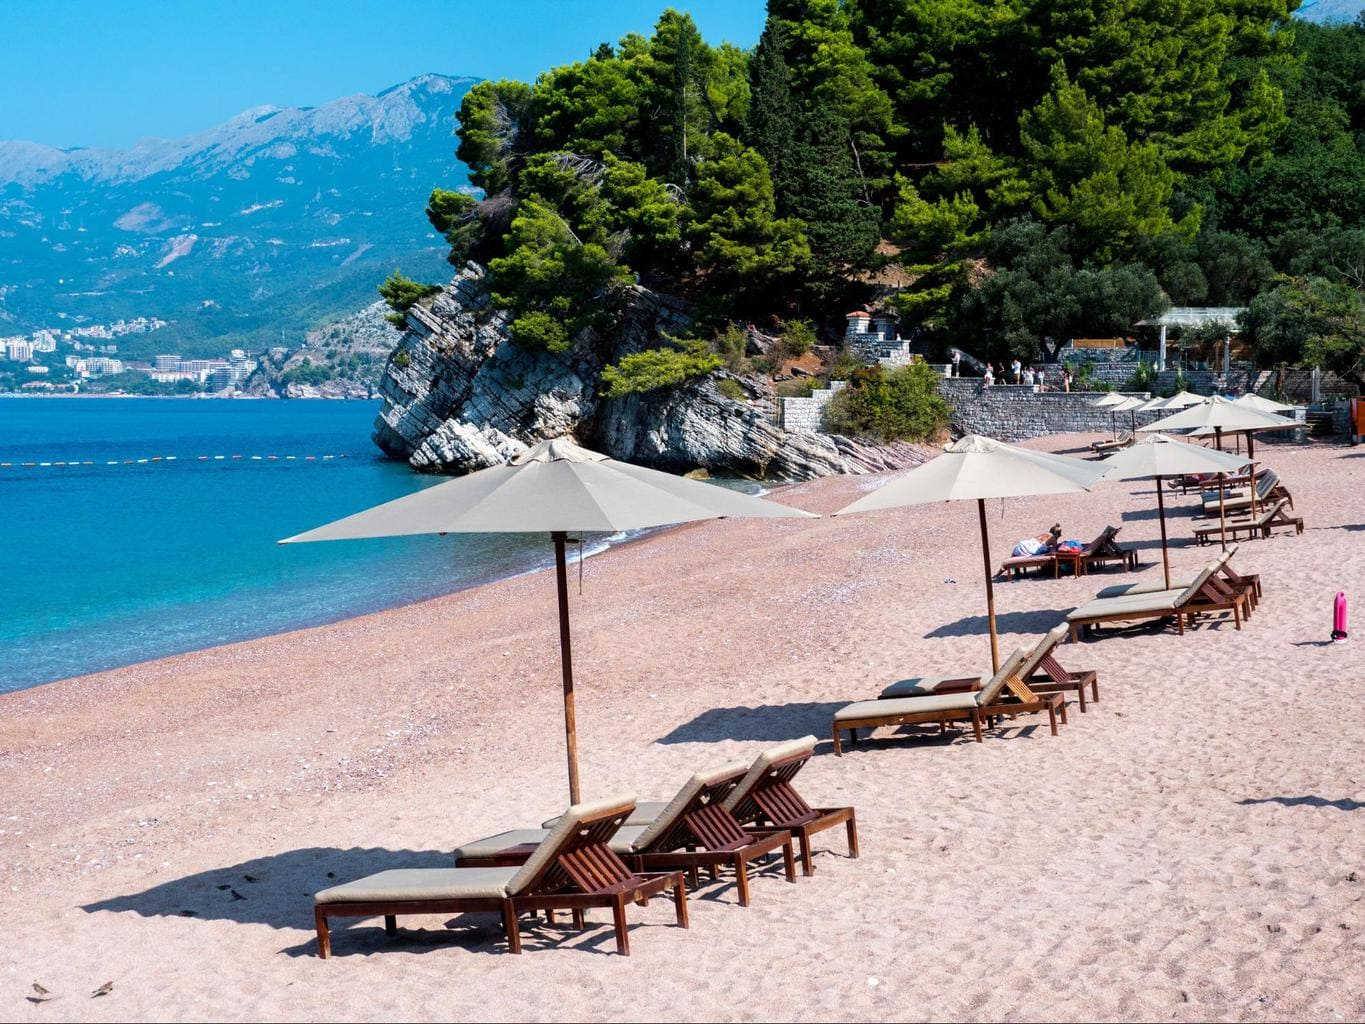 Sunbeds and umbrellas fill the beaches in Montenegro